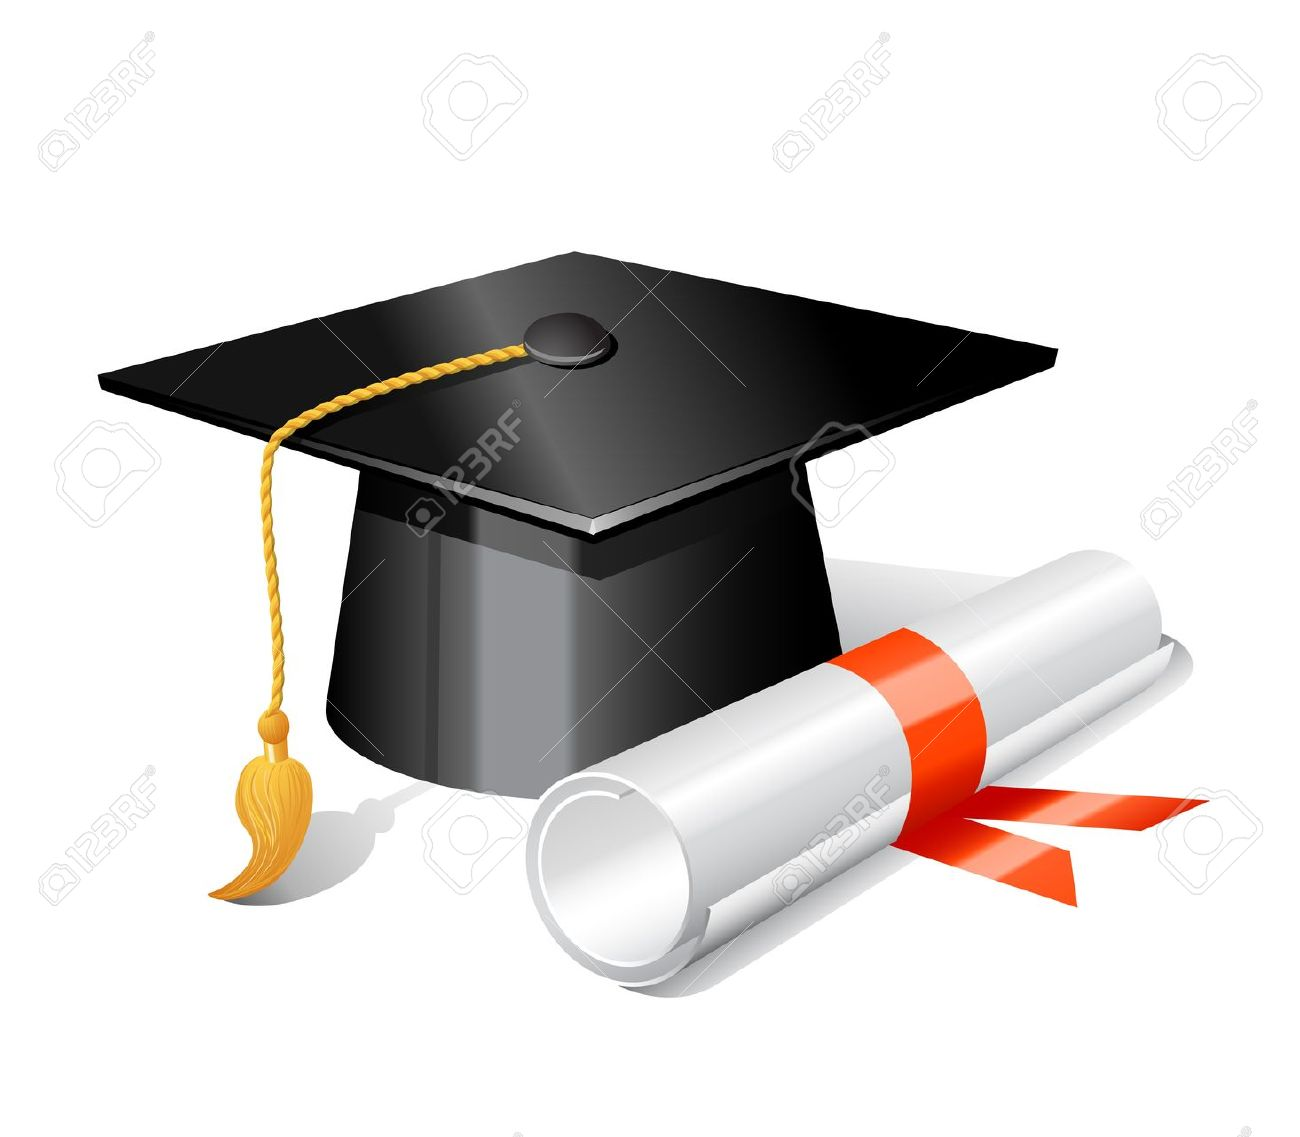 Clipart of graduation cap and scroll clipartfest.